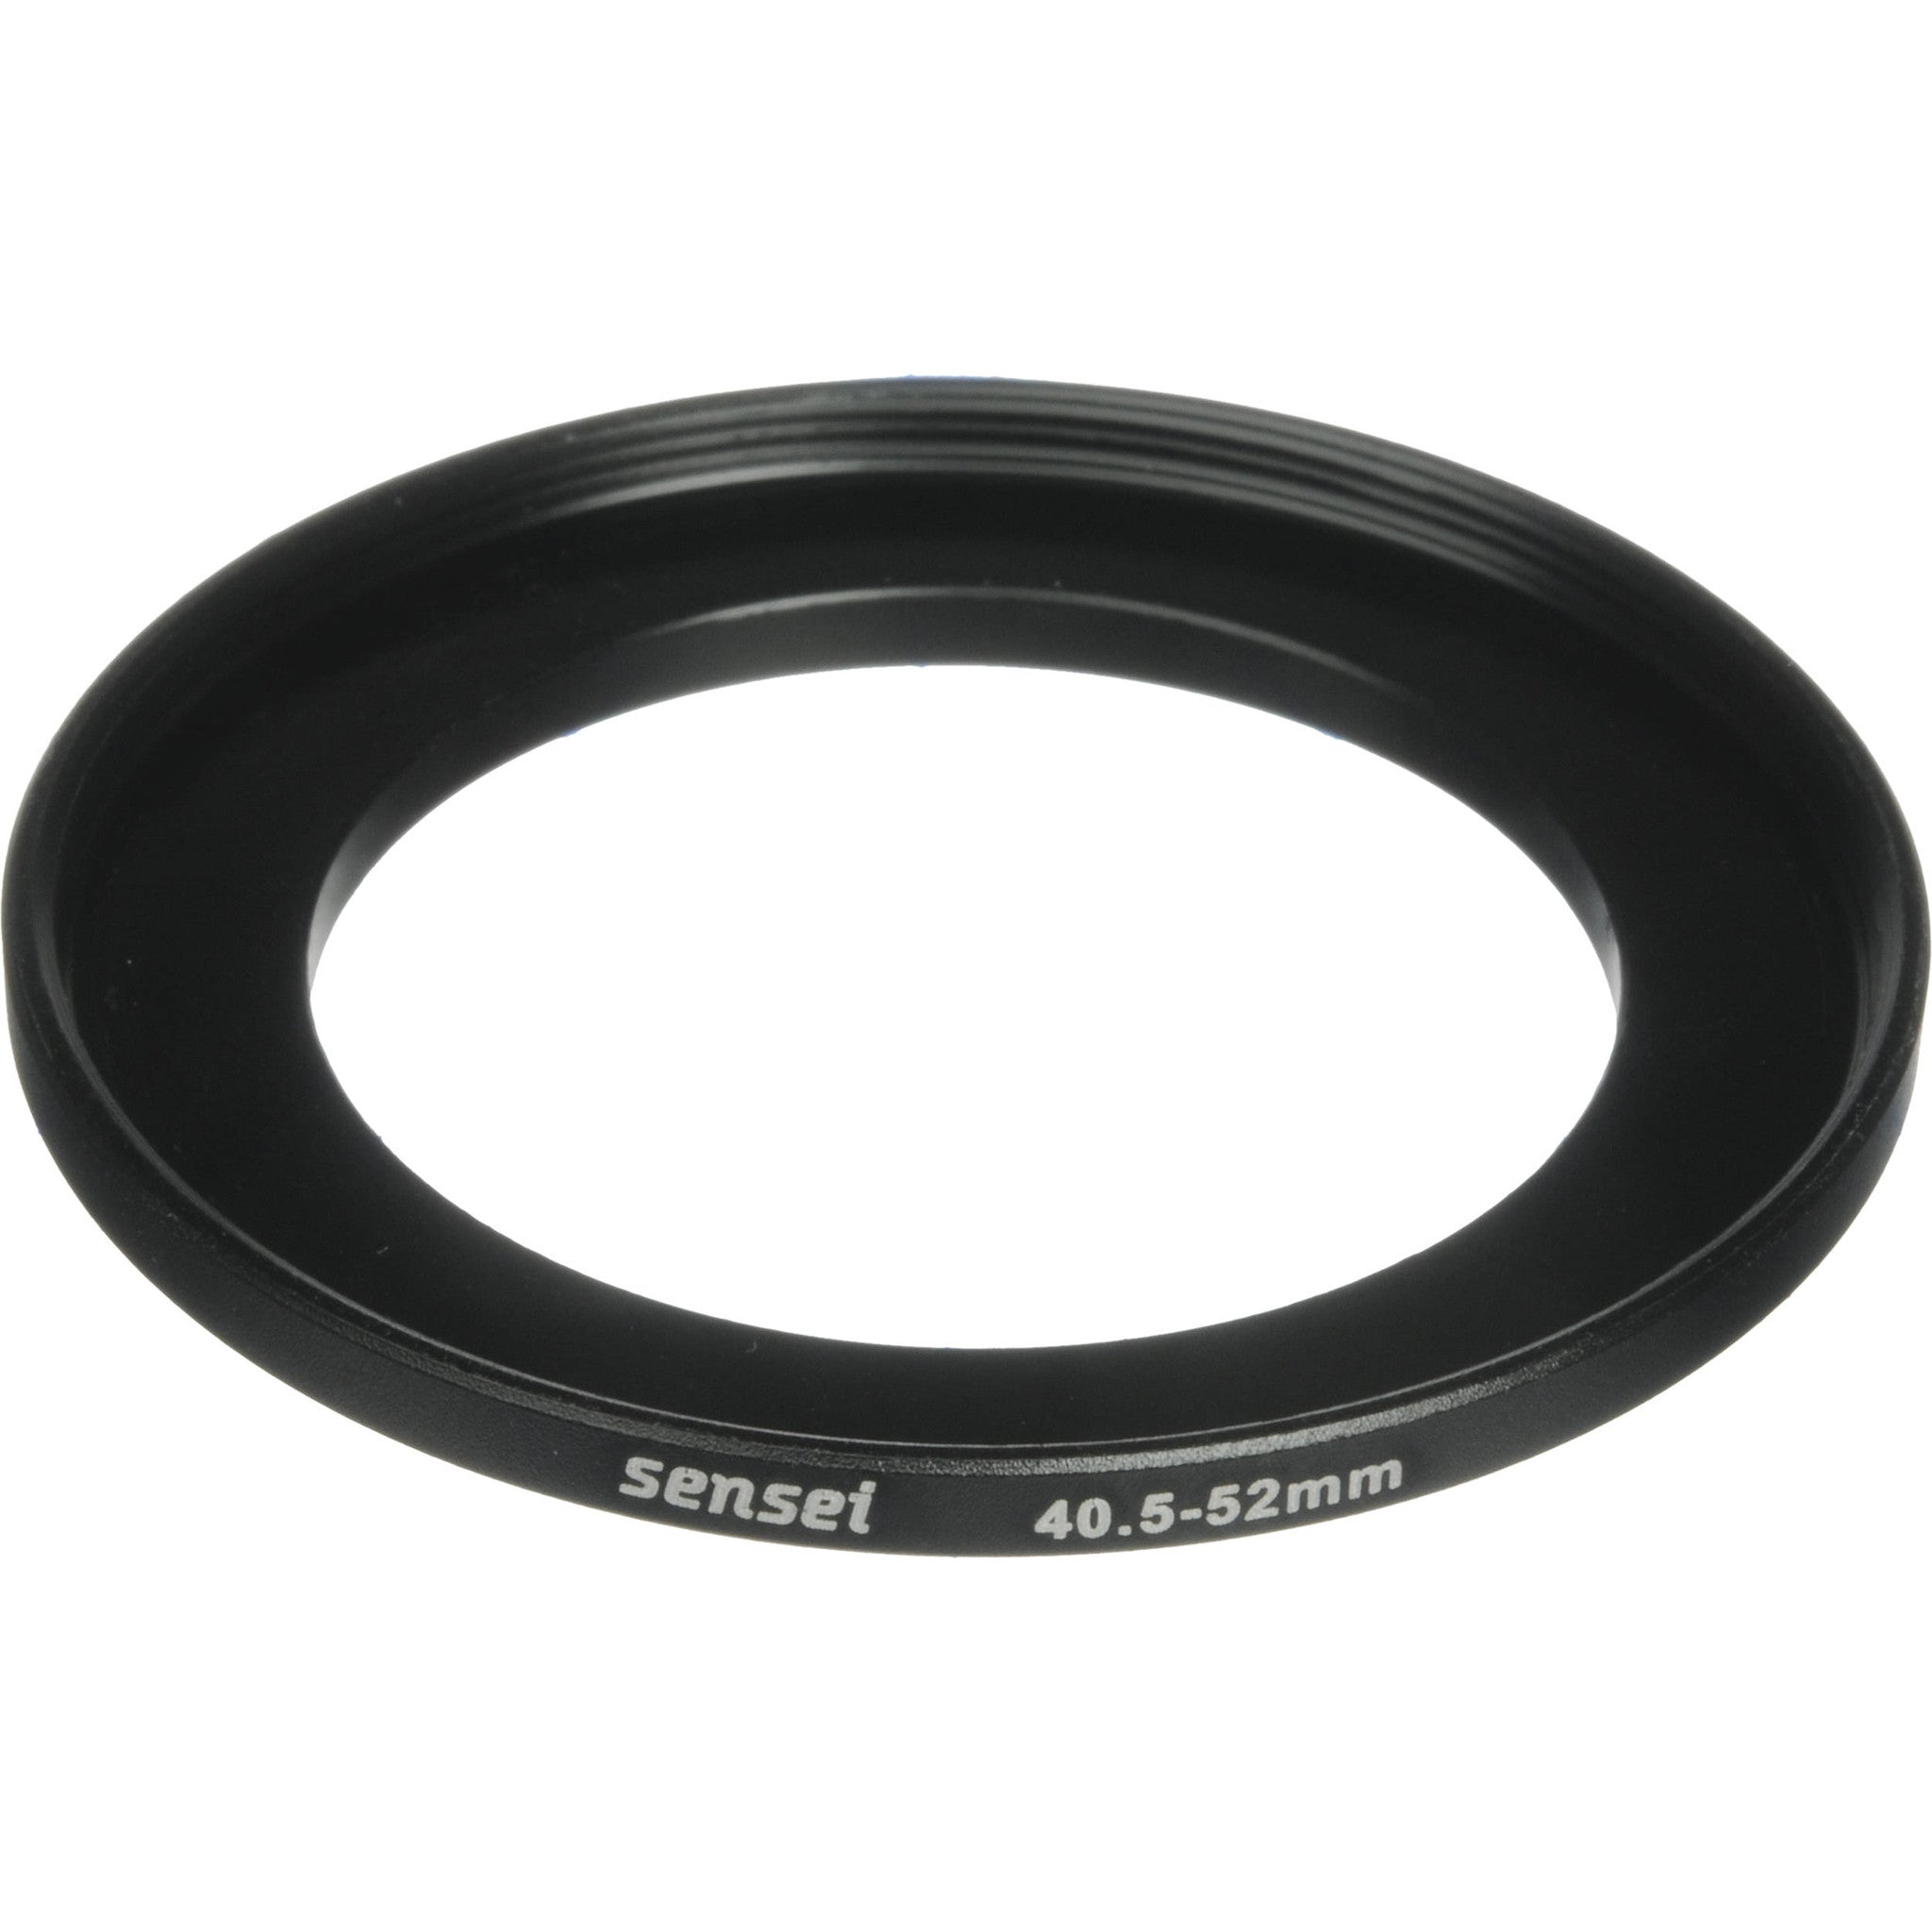 Sensei 40.5-52mm Step-Up Ring